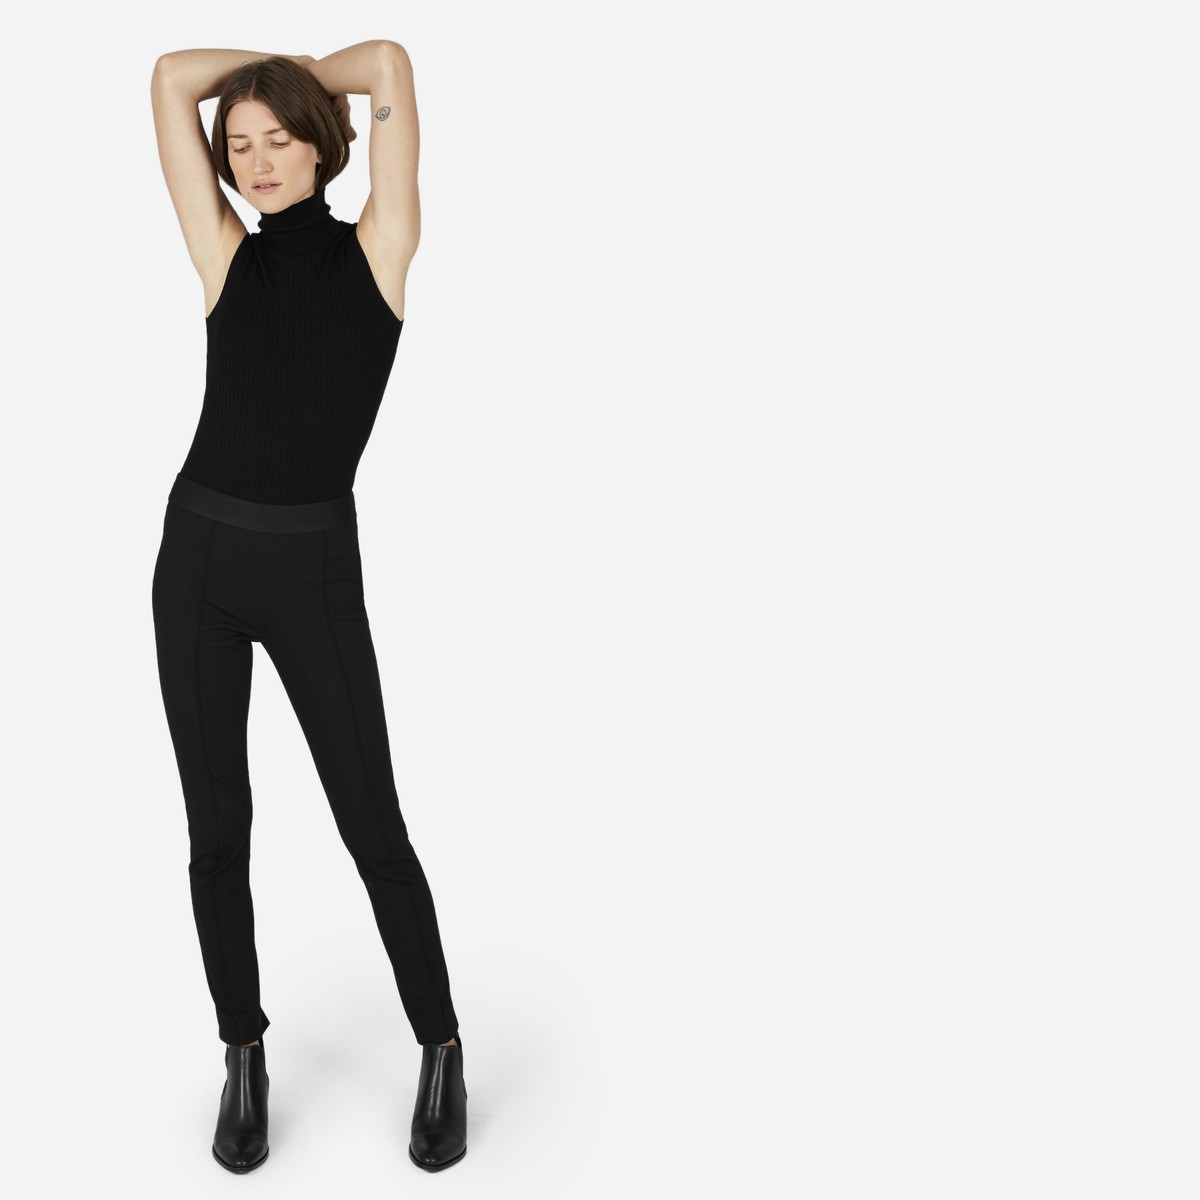 Everlane The Stretch Ponte Skinny Pant, $78, Photo Cred: Everlane